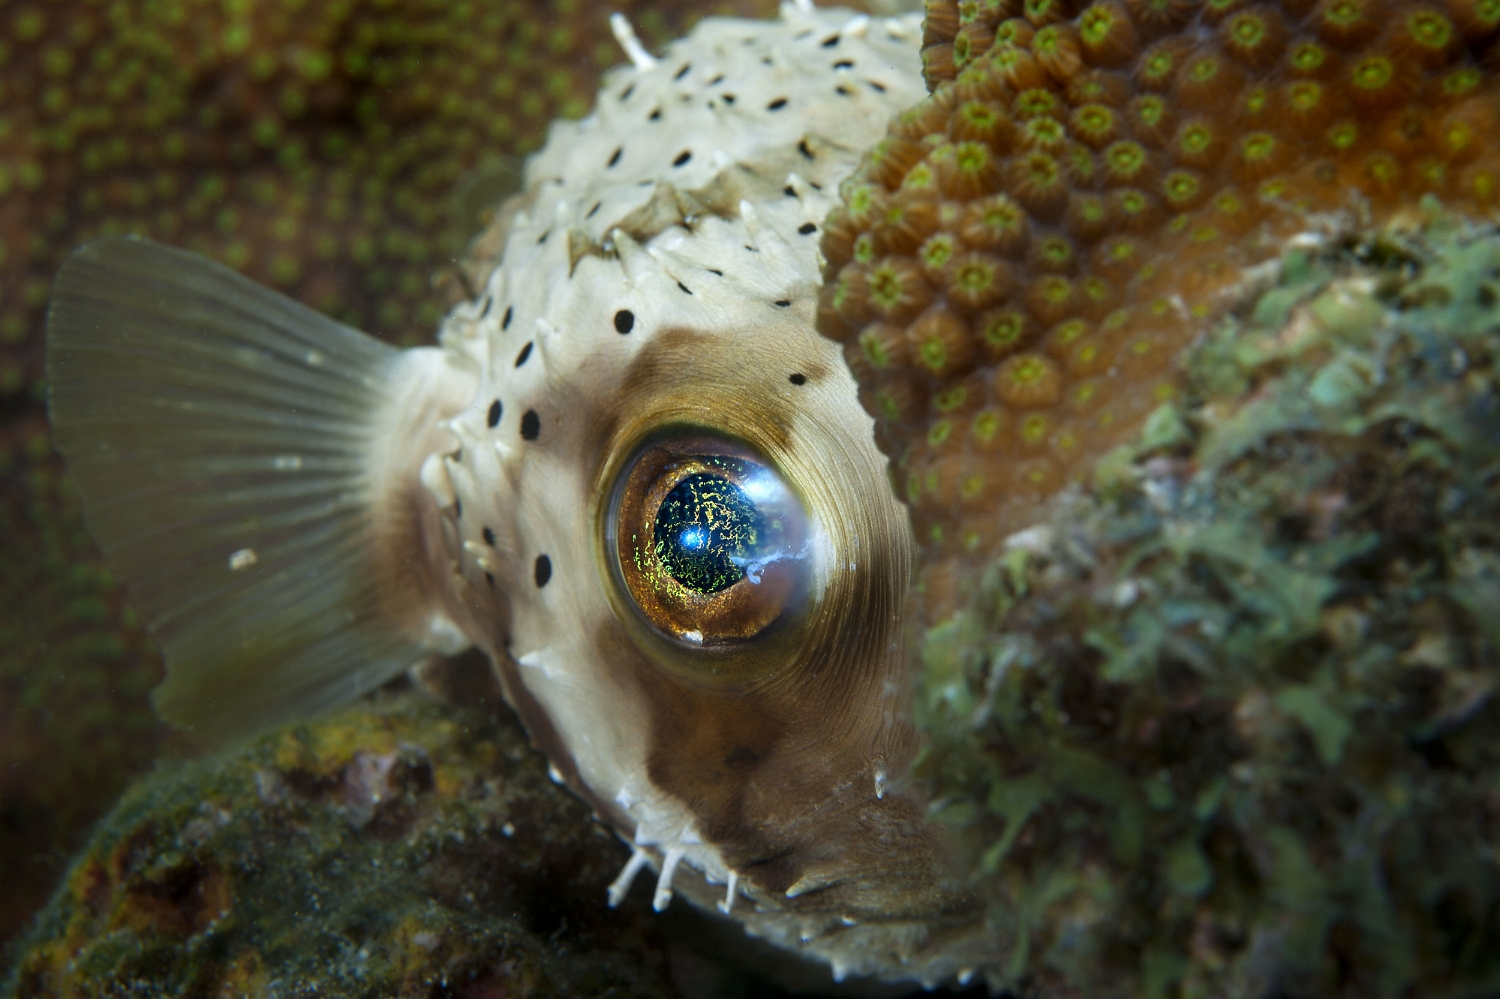 A young Longspine balloonfish (Diodon holocanthus) peers out from behind a coral head at Something Special in Bonaire on Friday, August 14, 2015.